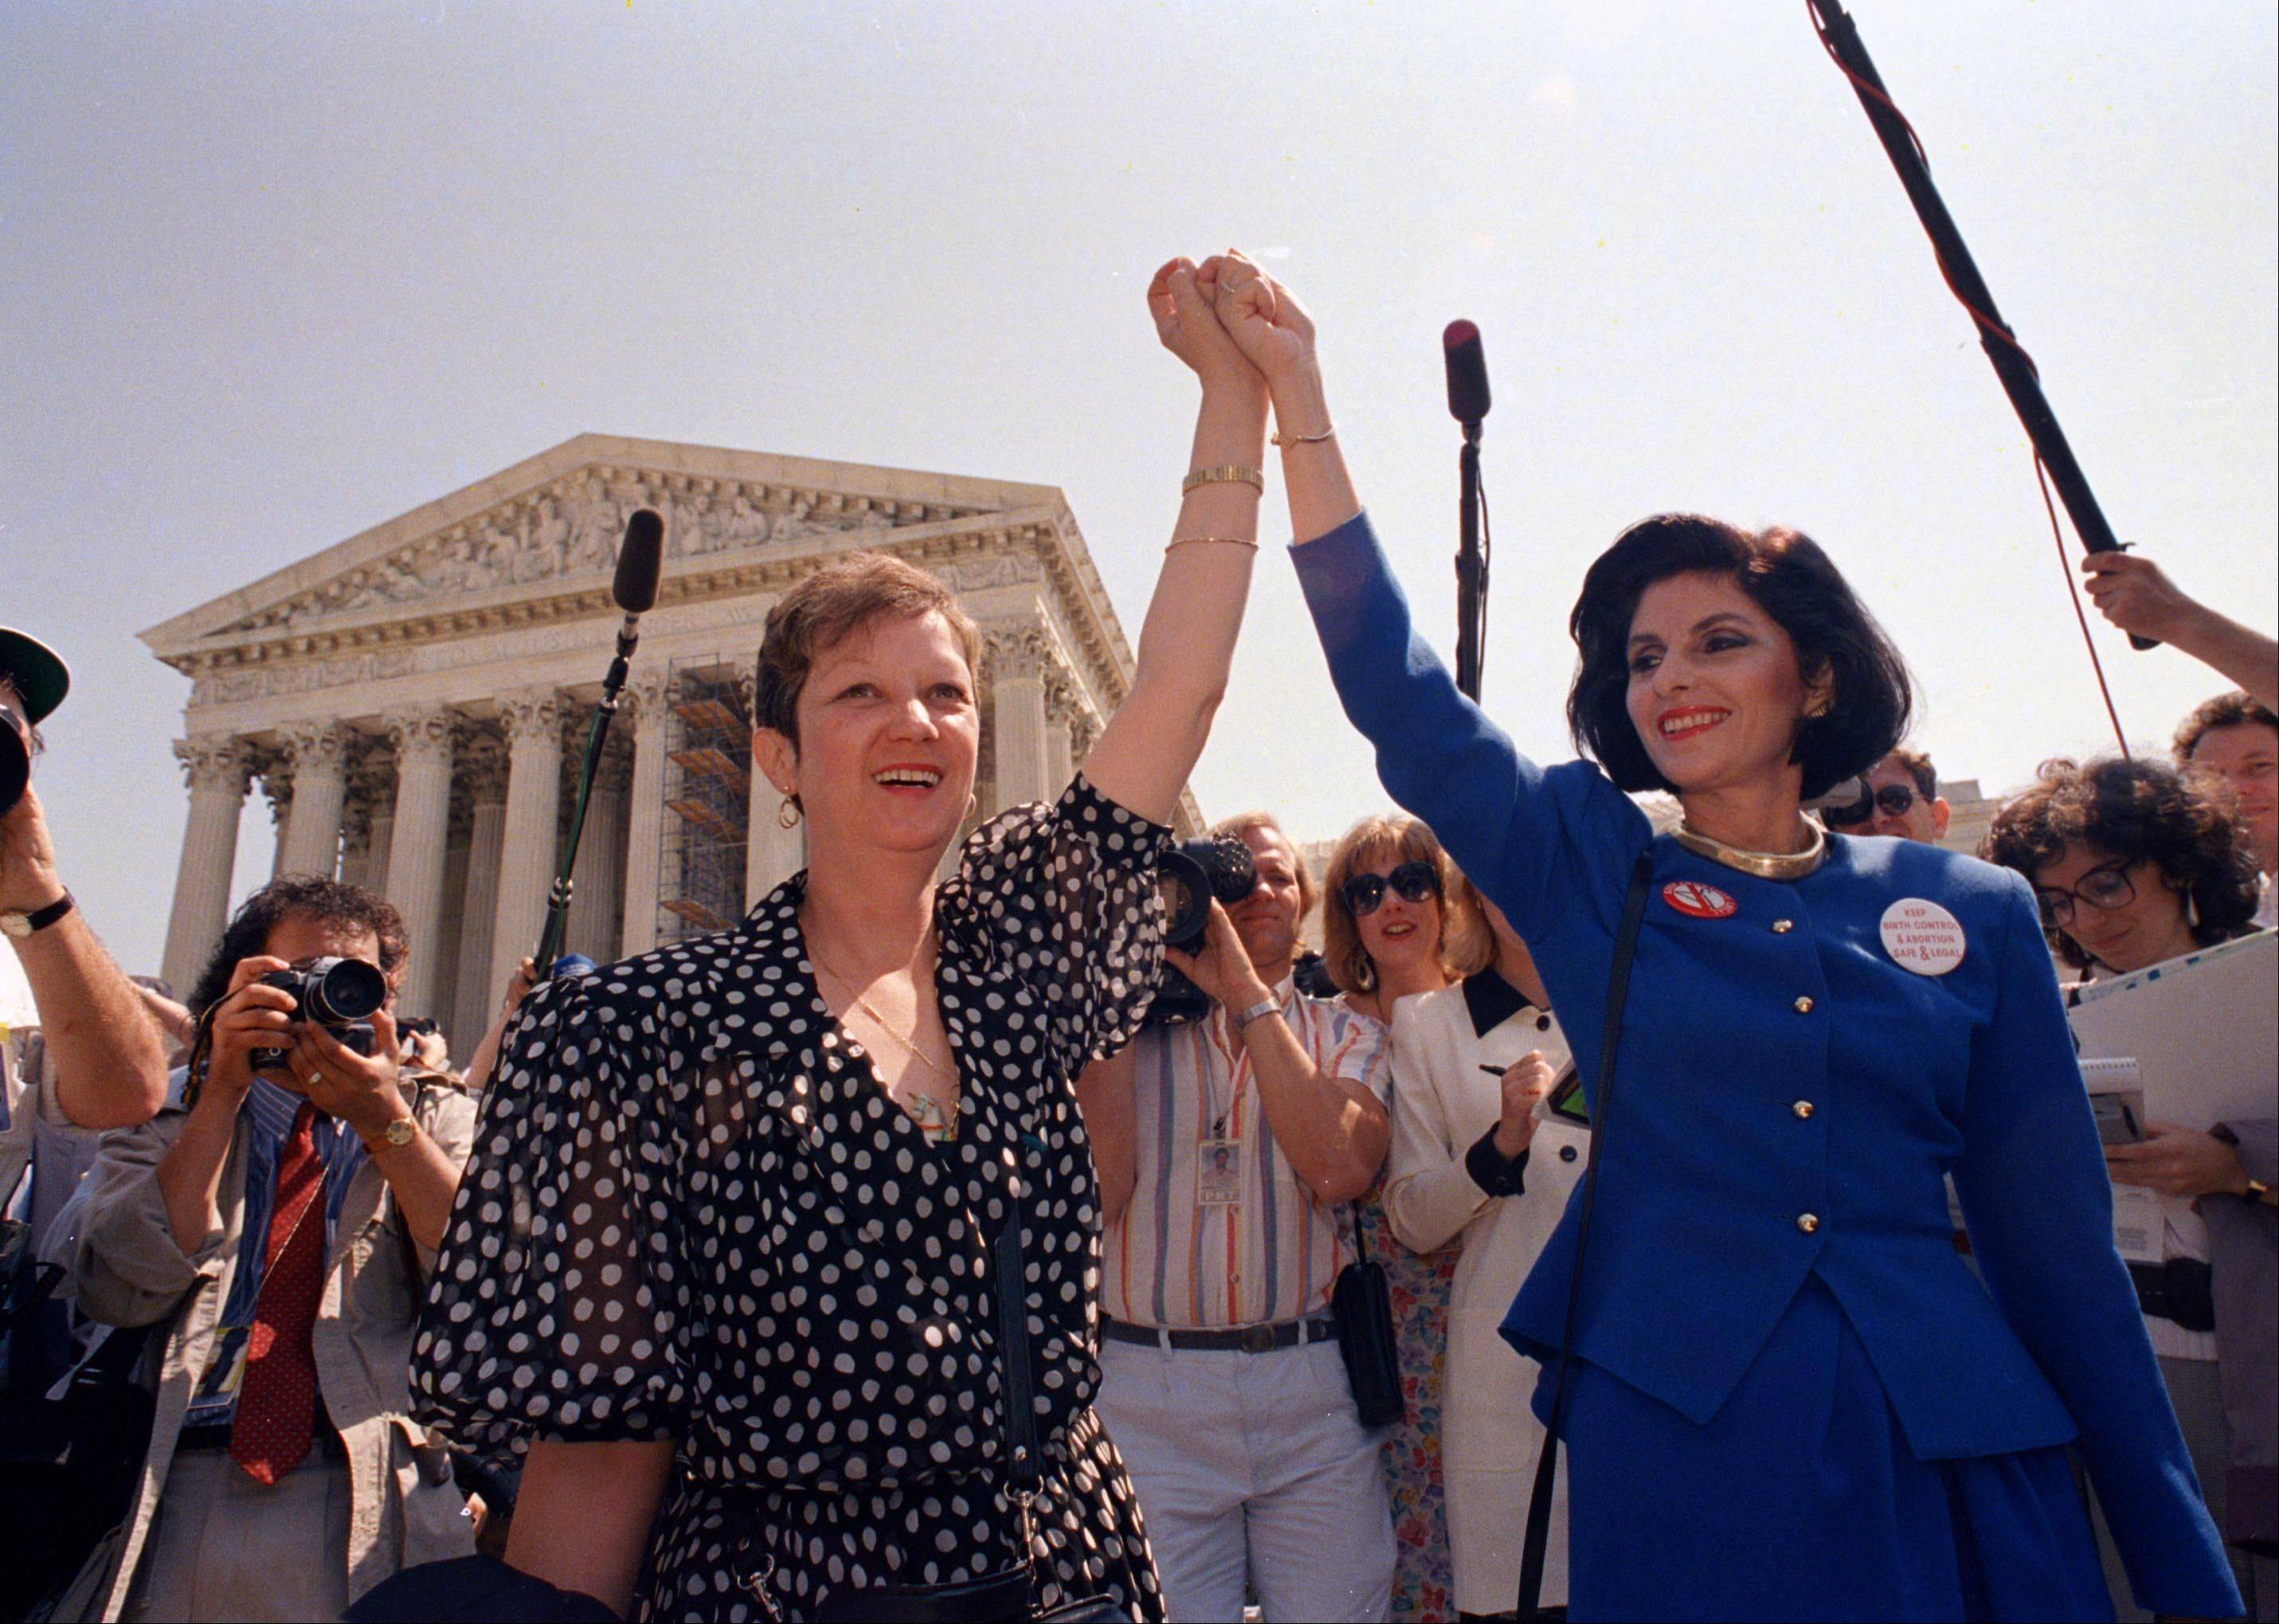 Protesters at the Supreme Court decry abortion in 1986.